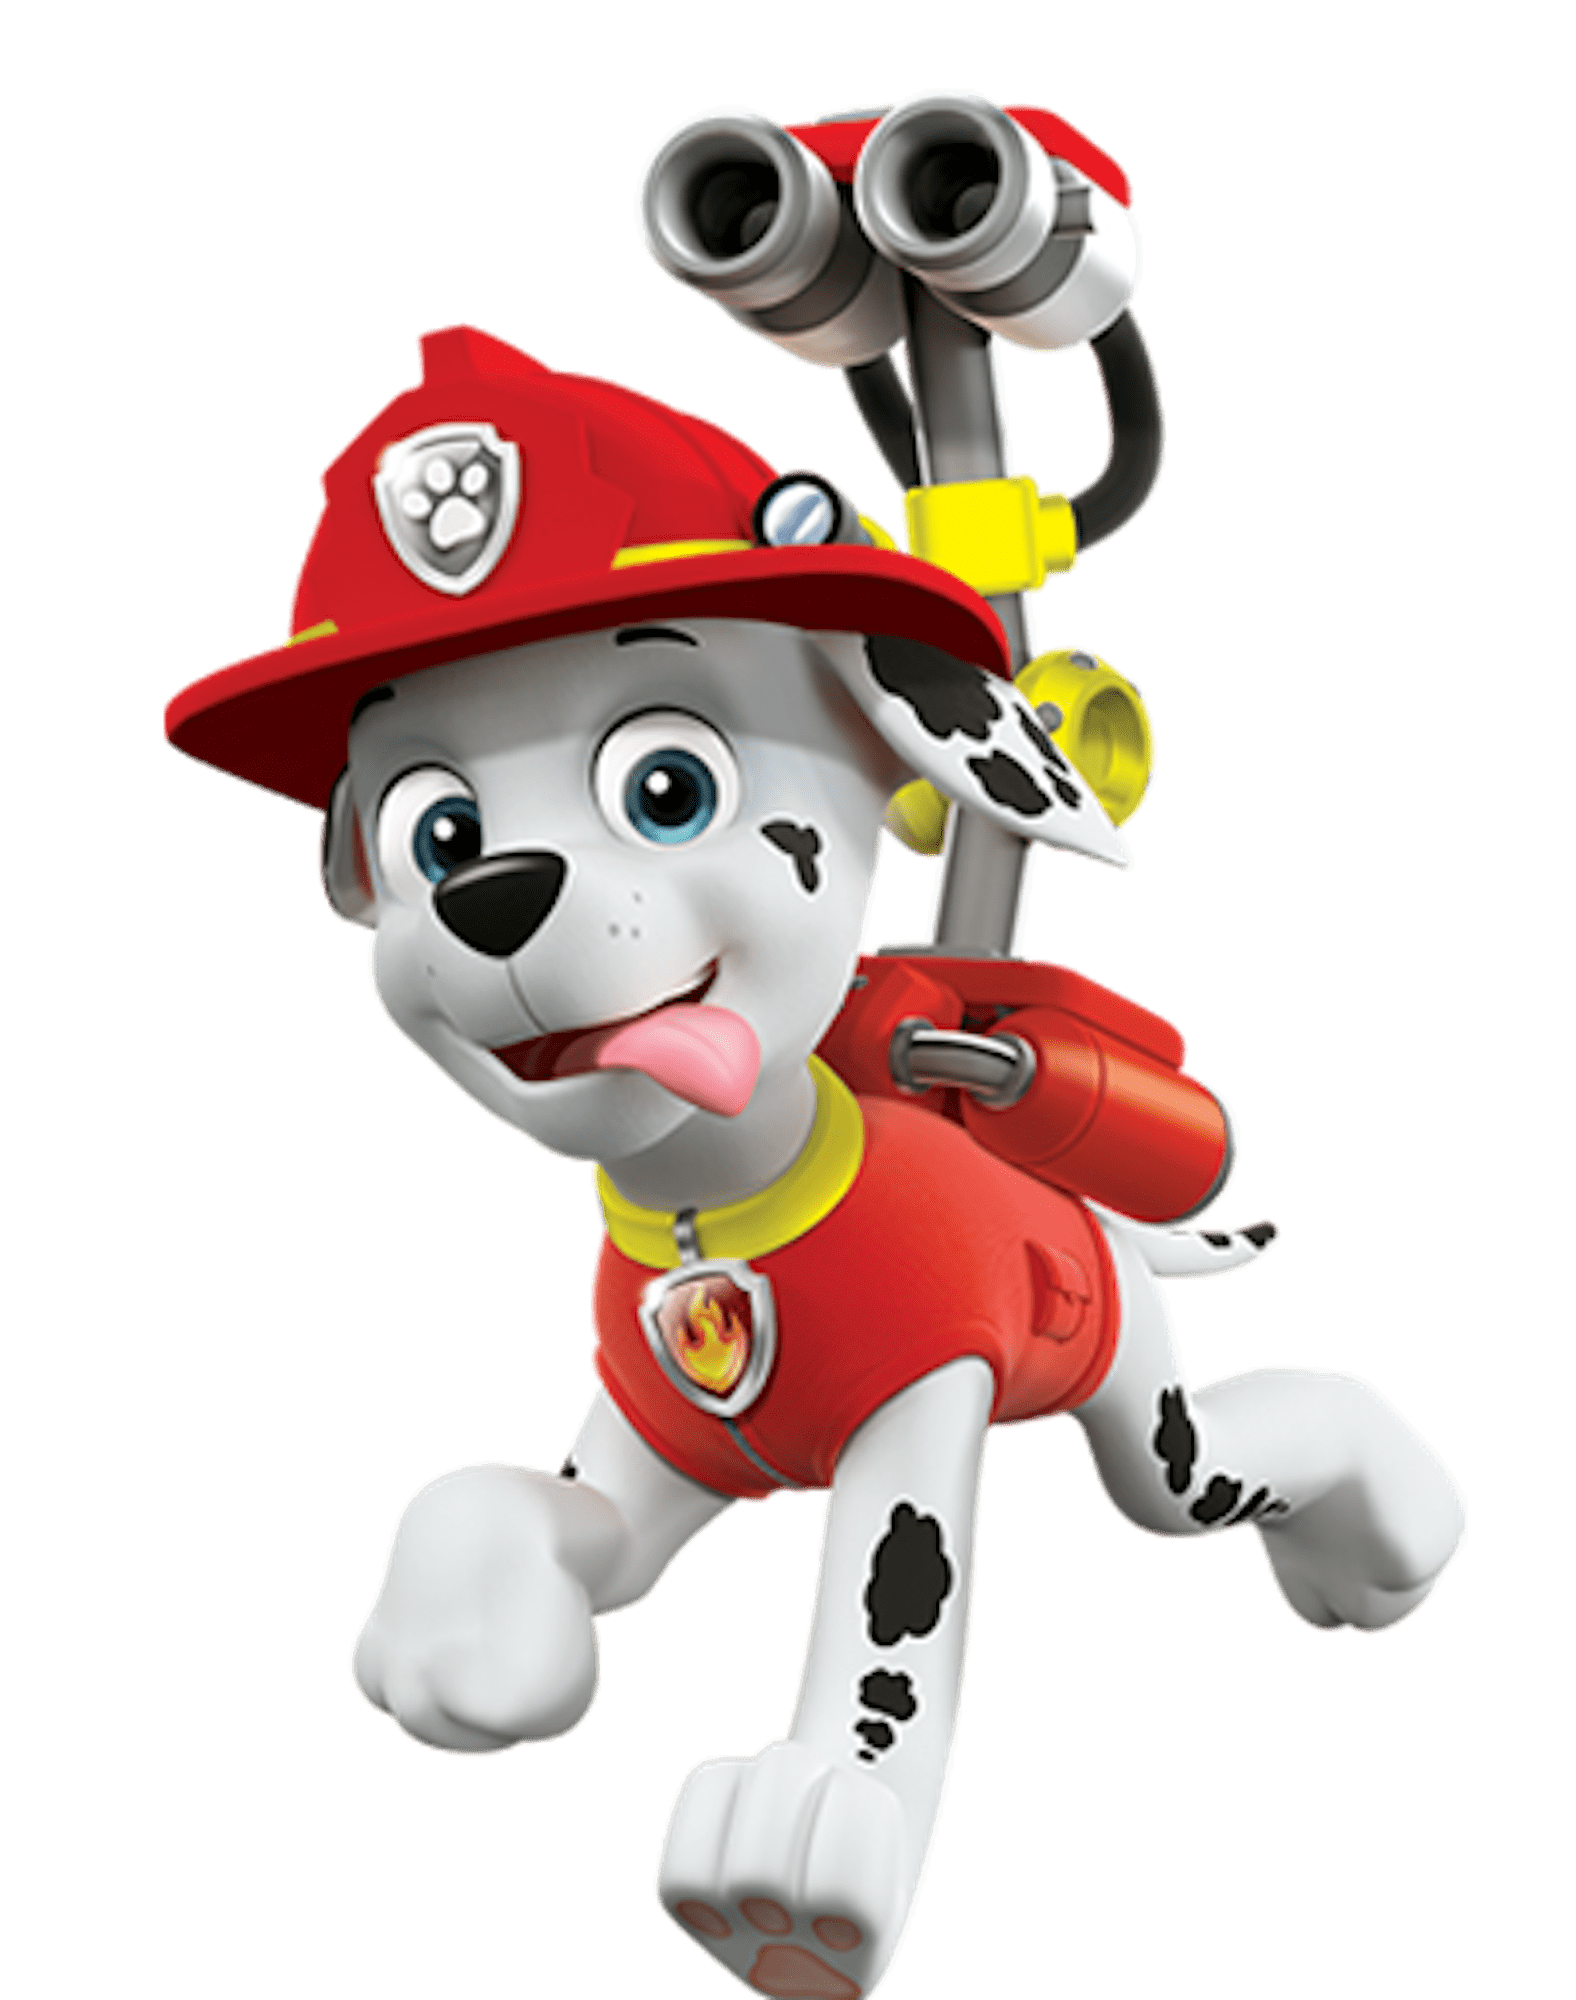 Marshall clipart paw patrol picture library library 28+ Collection of Marshall Paw Patrol Clipart | High quality, free ... picture library library